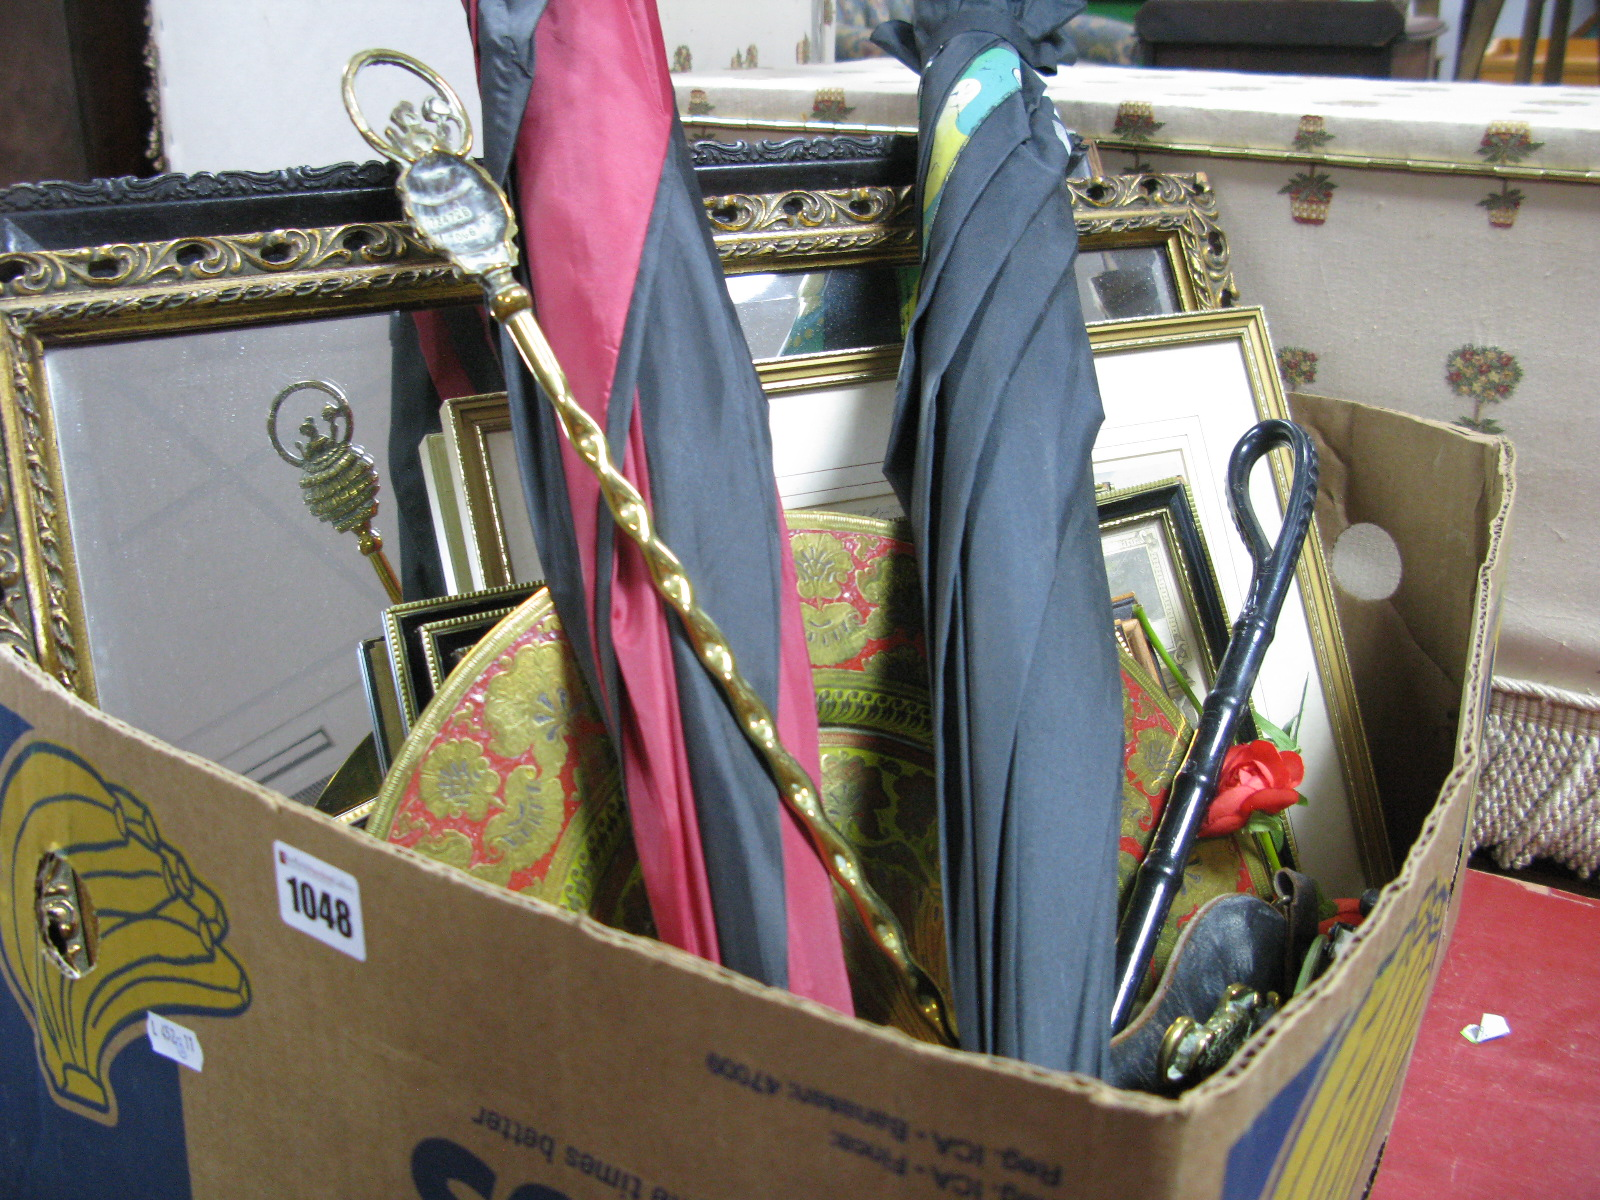 Lot 1048 - pictures, golf brollies, jam pans, etc